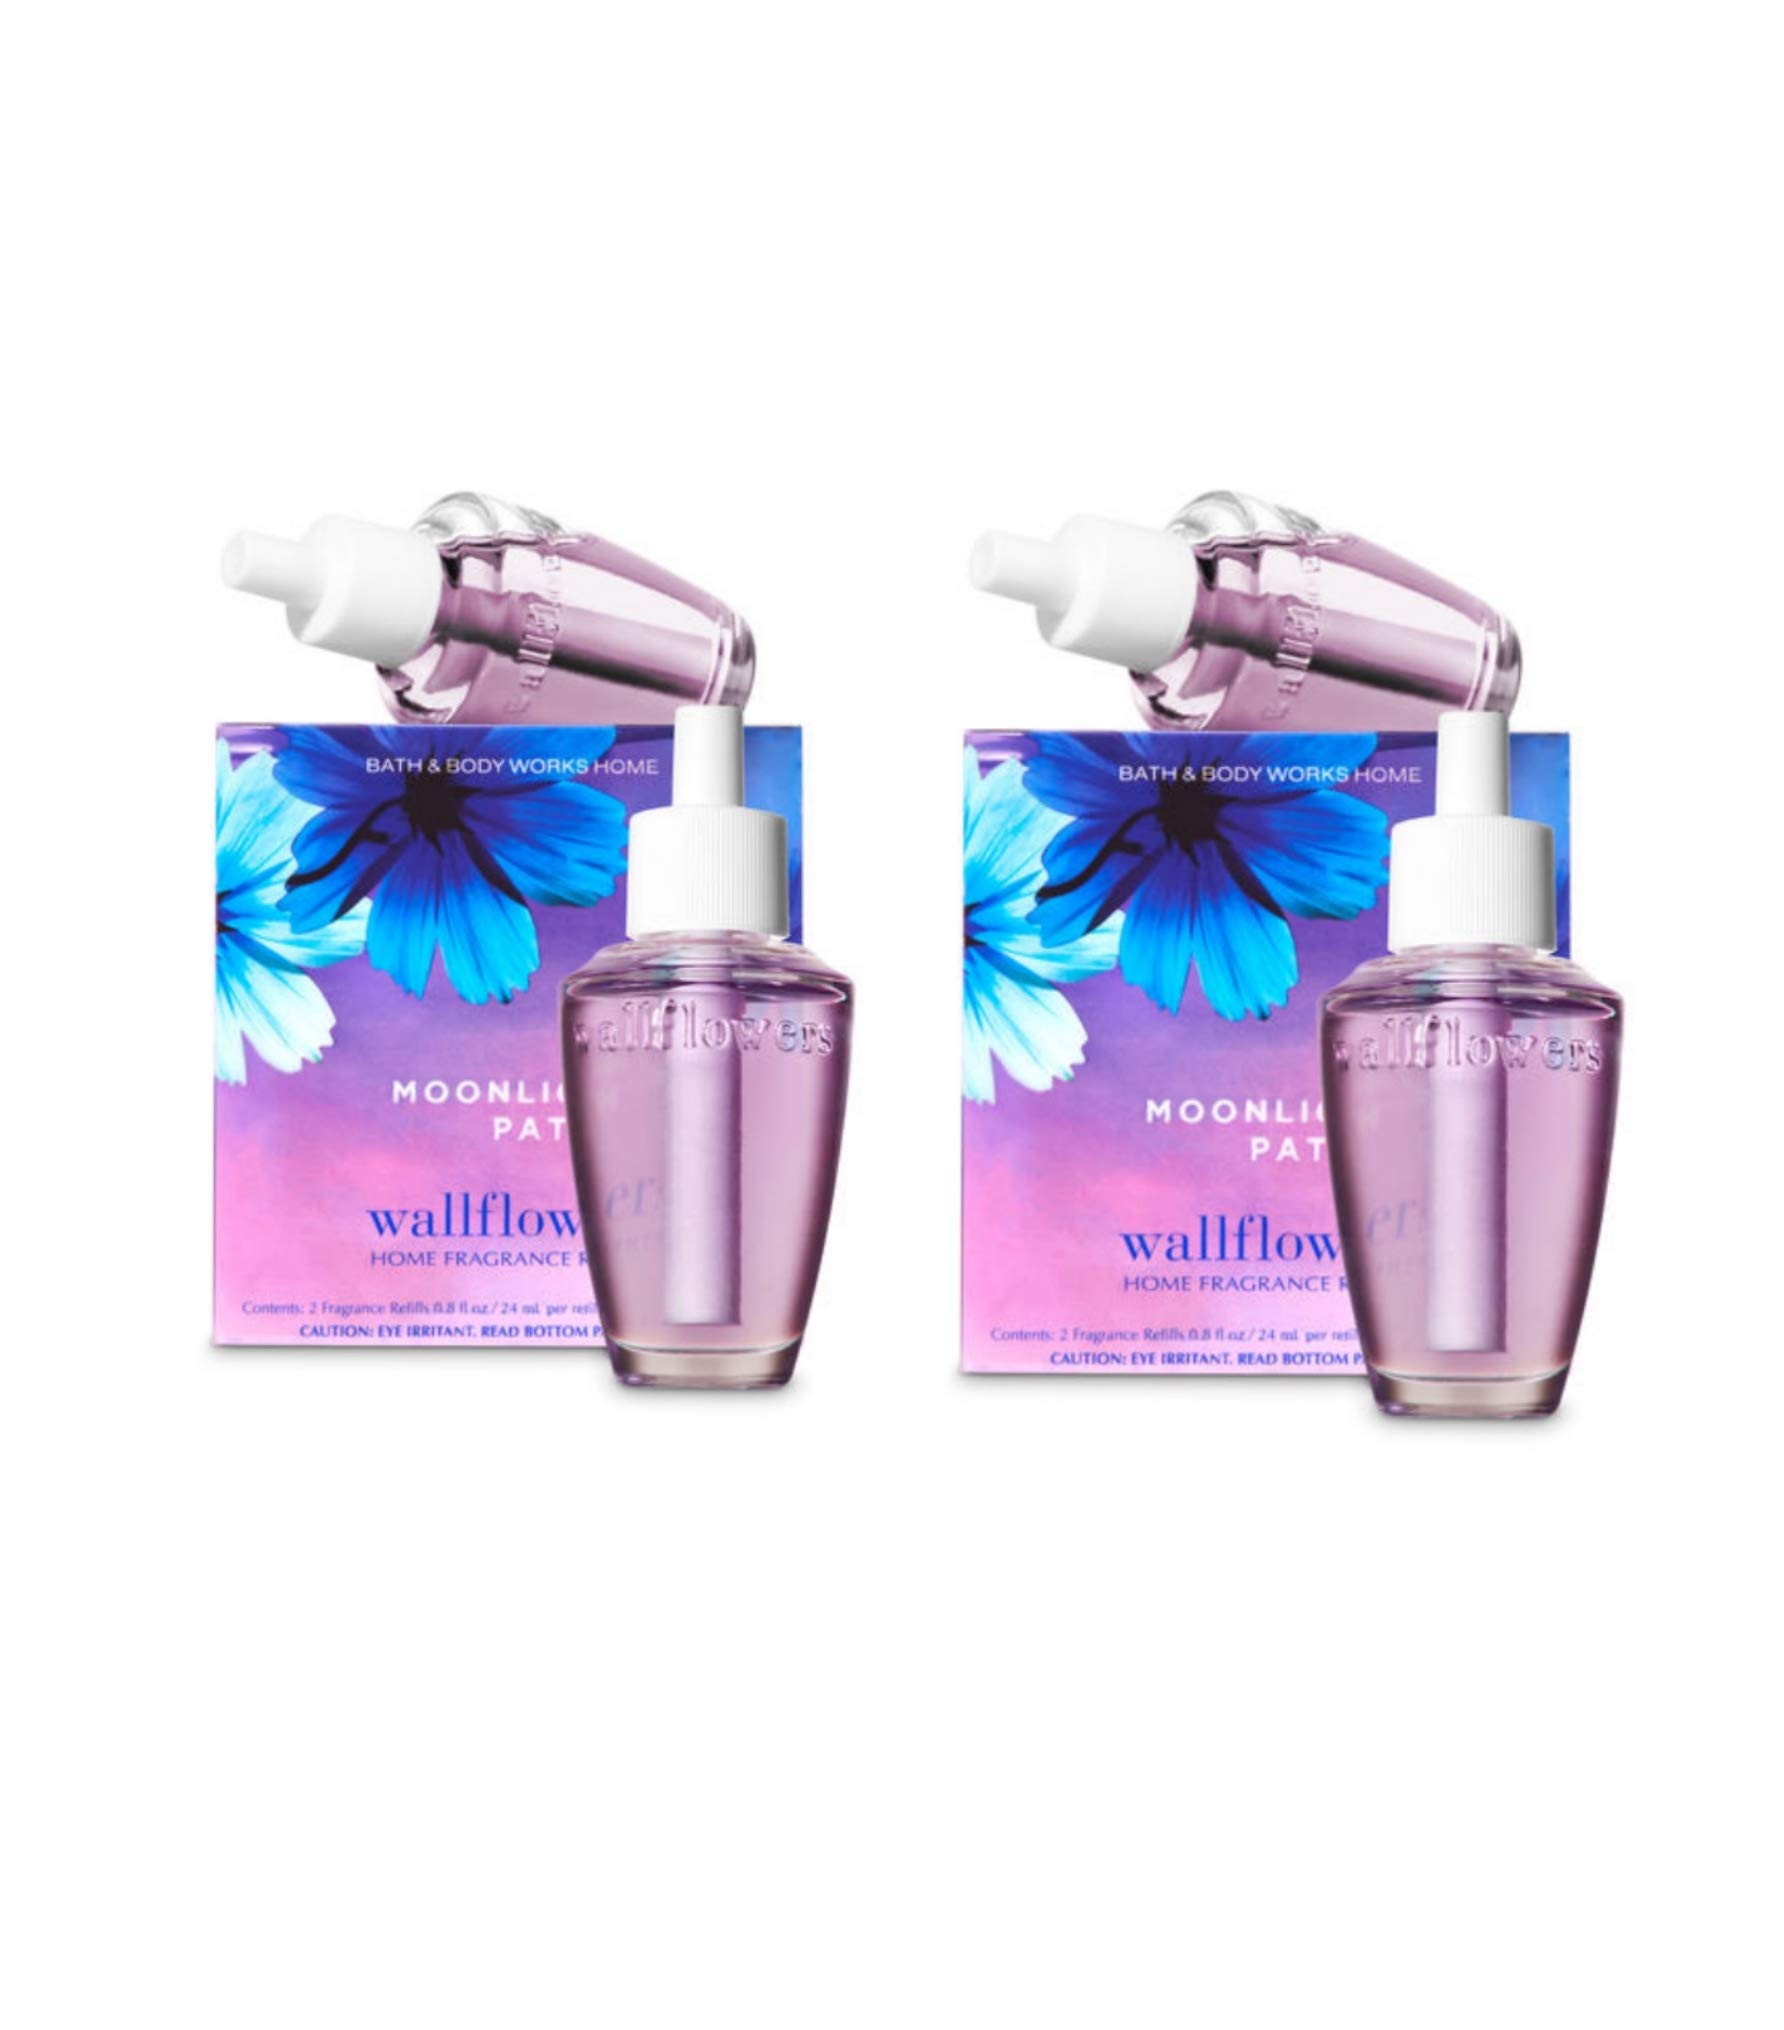 Bath and Body Works Wallflowers 4 Bulbs Refills MOONLIGHT PATH by Bath & Body Works (Image #1)